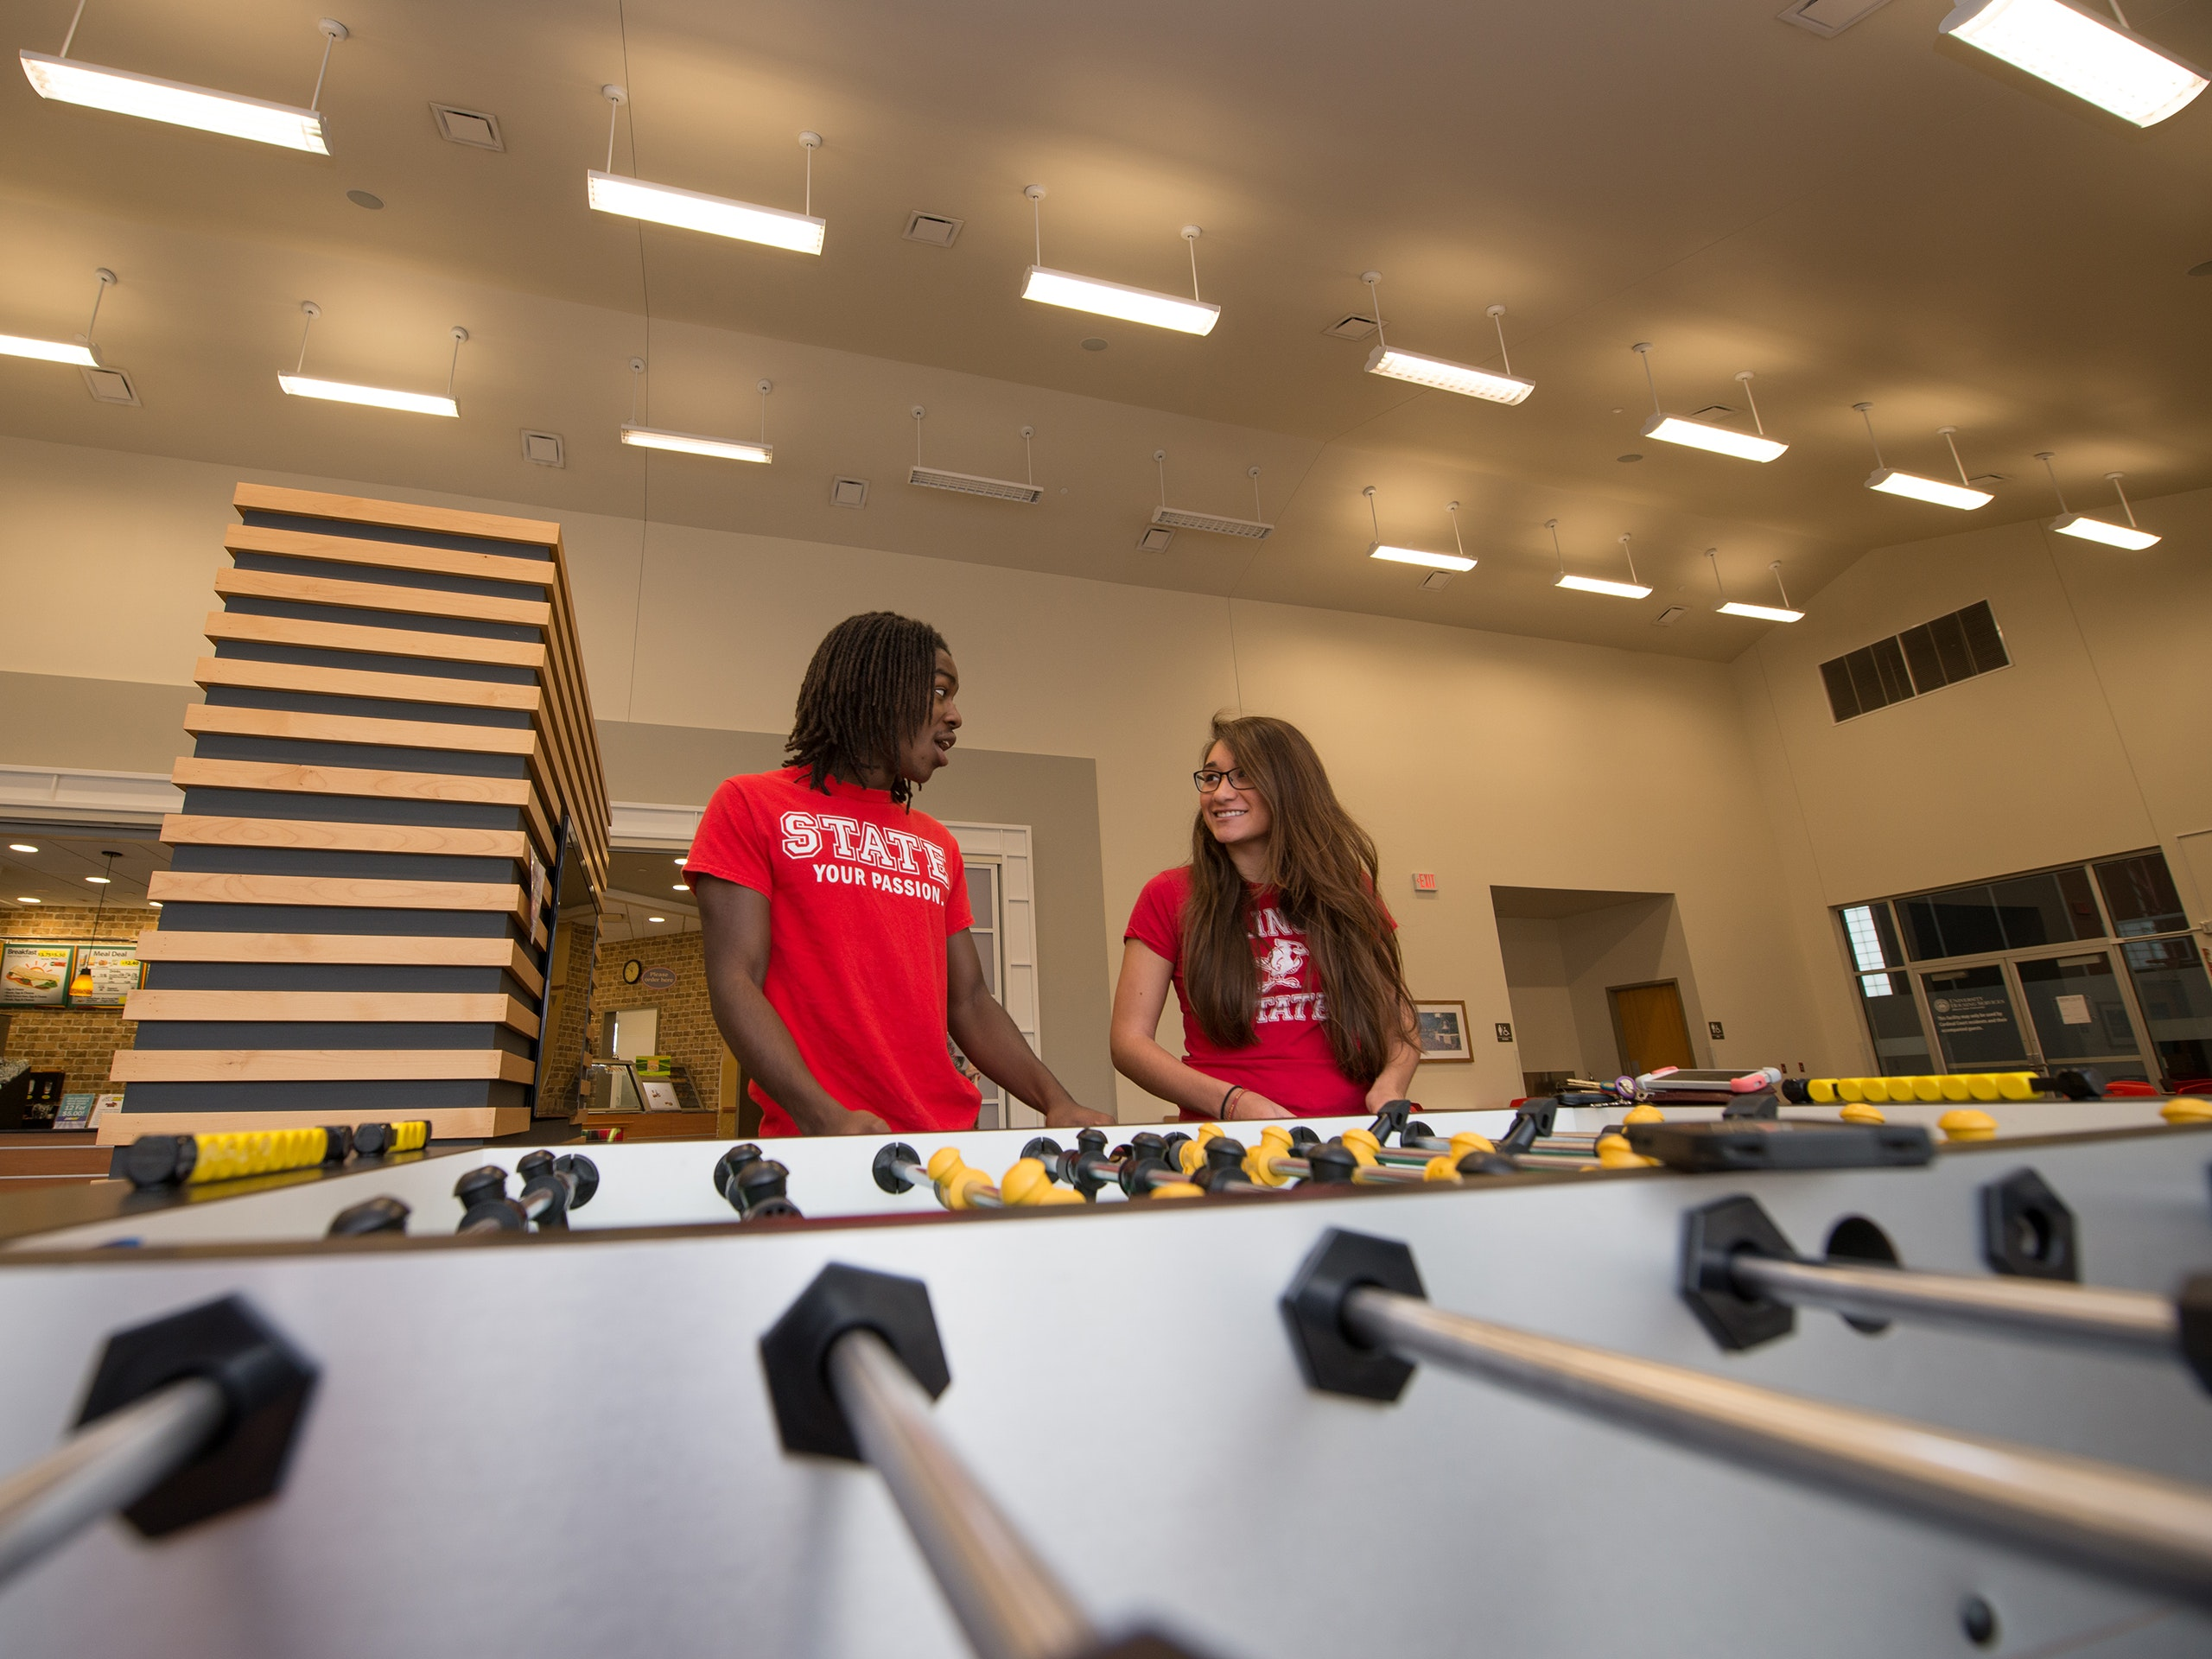 Male and female student team playing foosball in a residence hall common area.